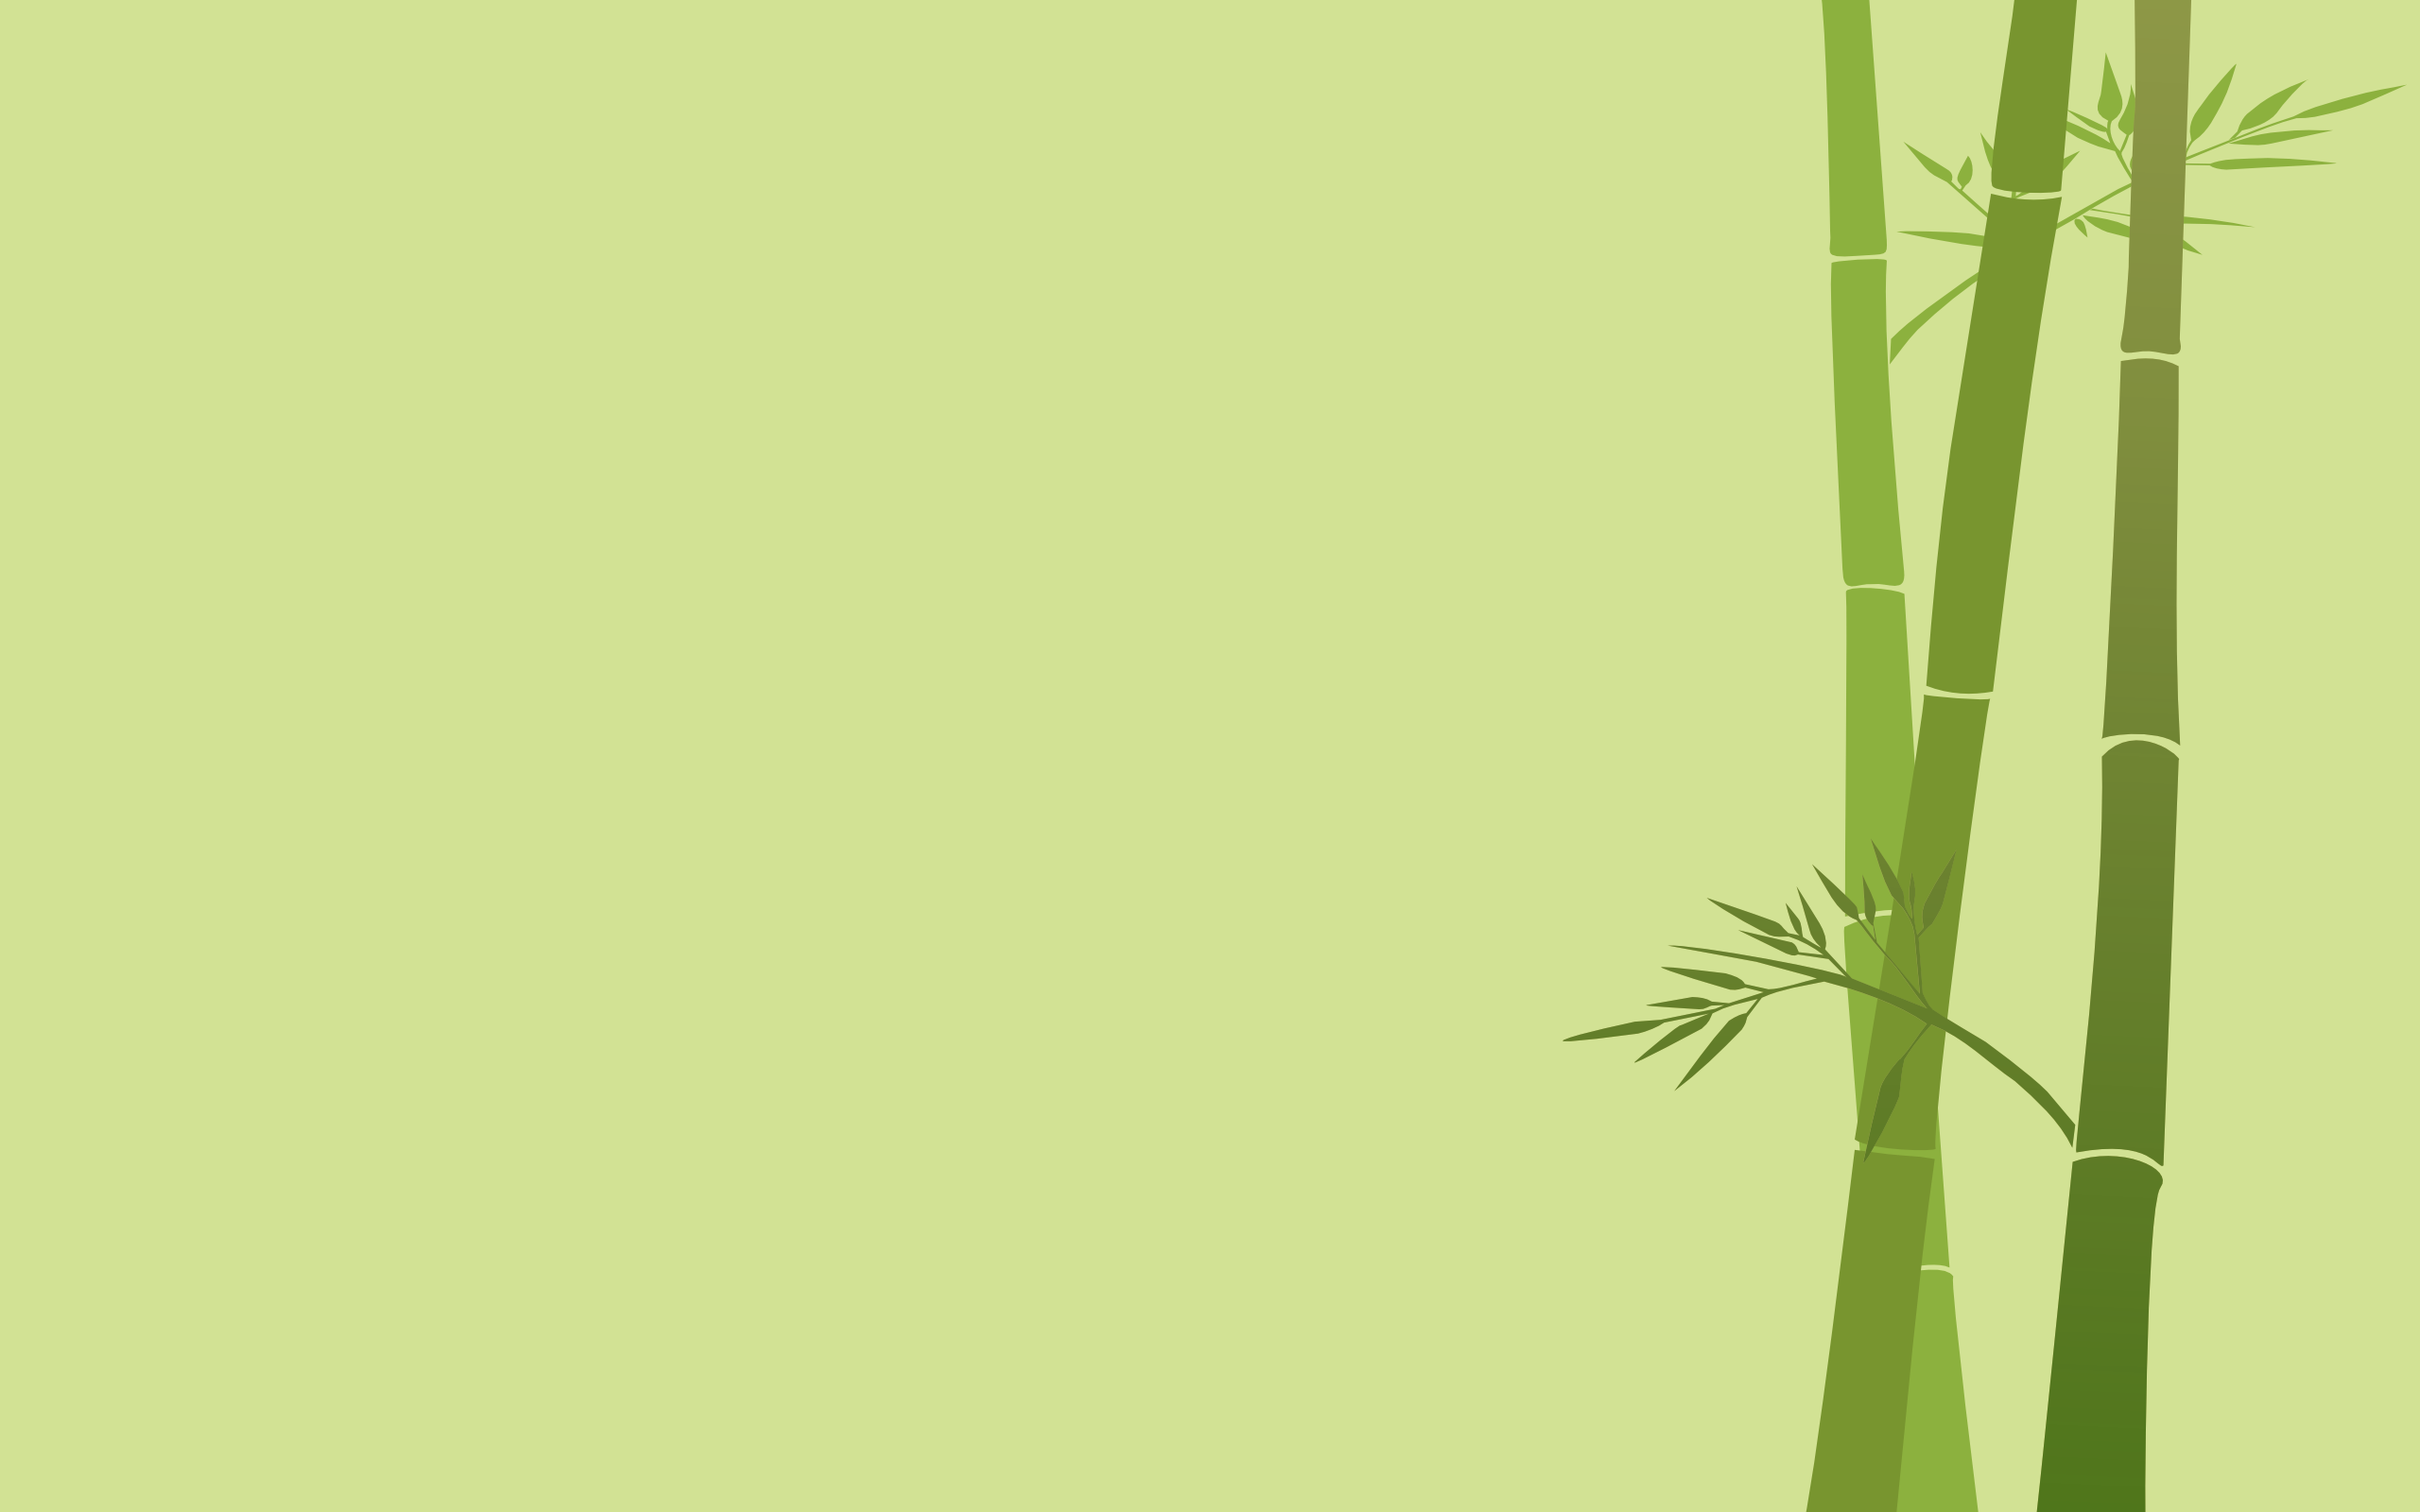 desktop-bamboo-hd-wallpapers-images-download | wallpaper.wiki